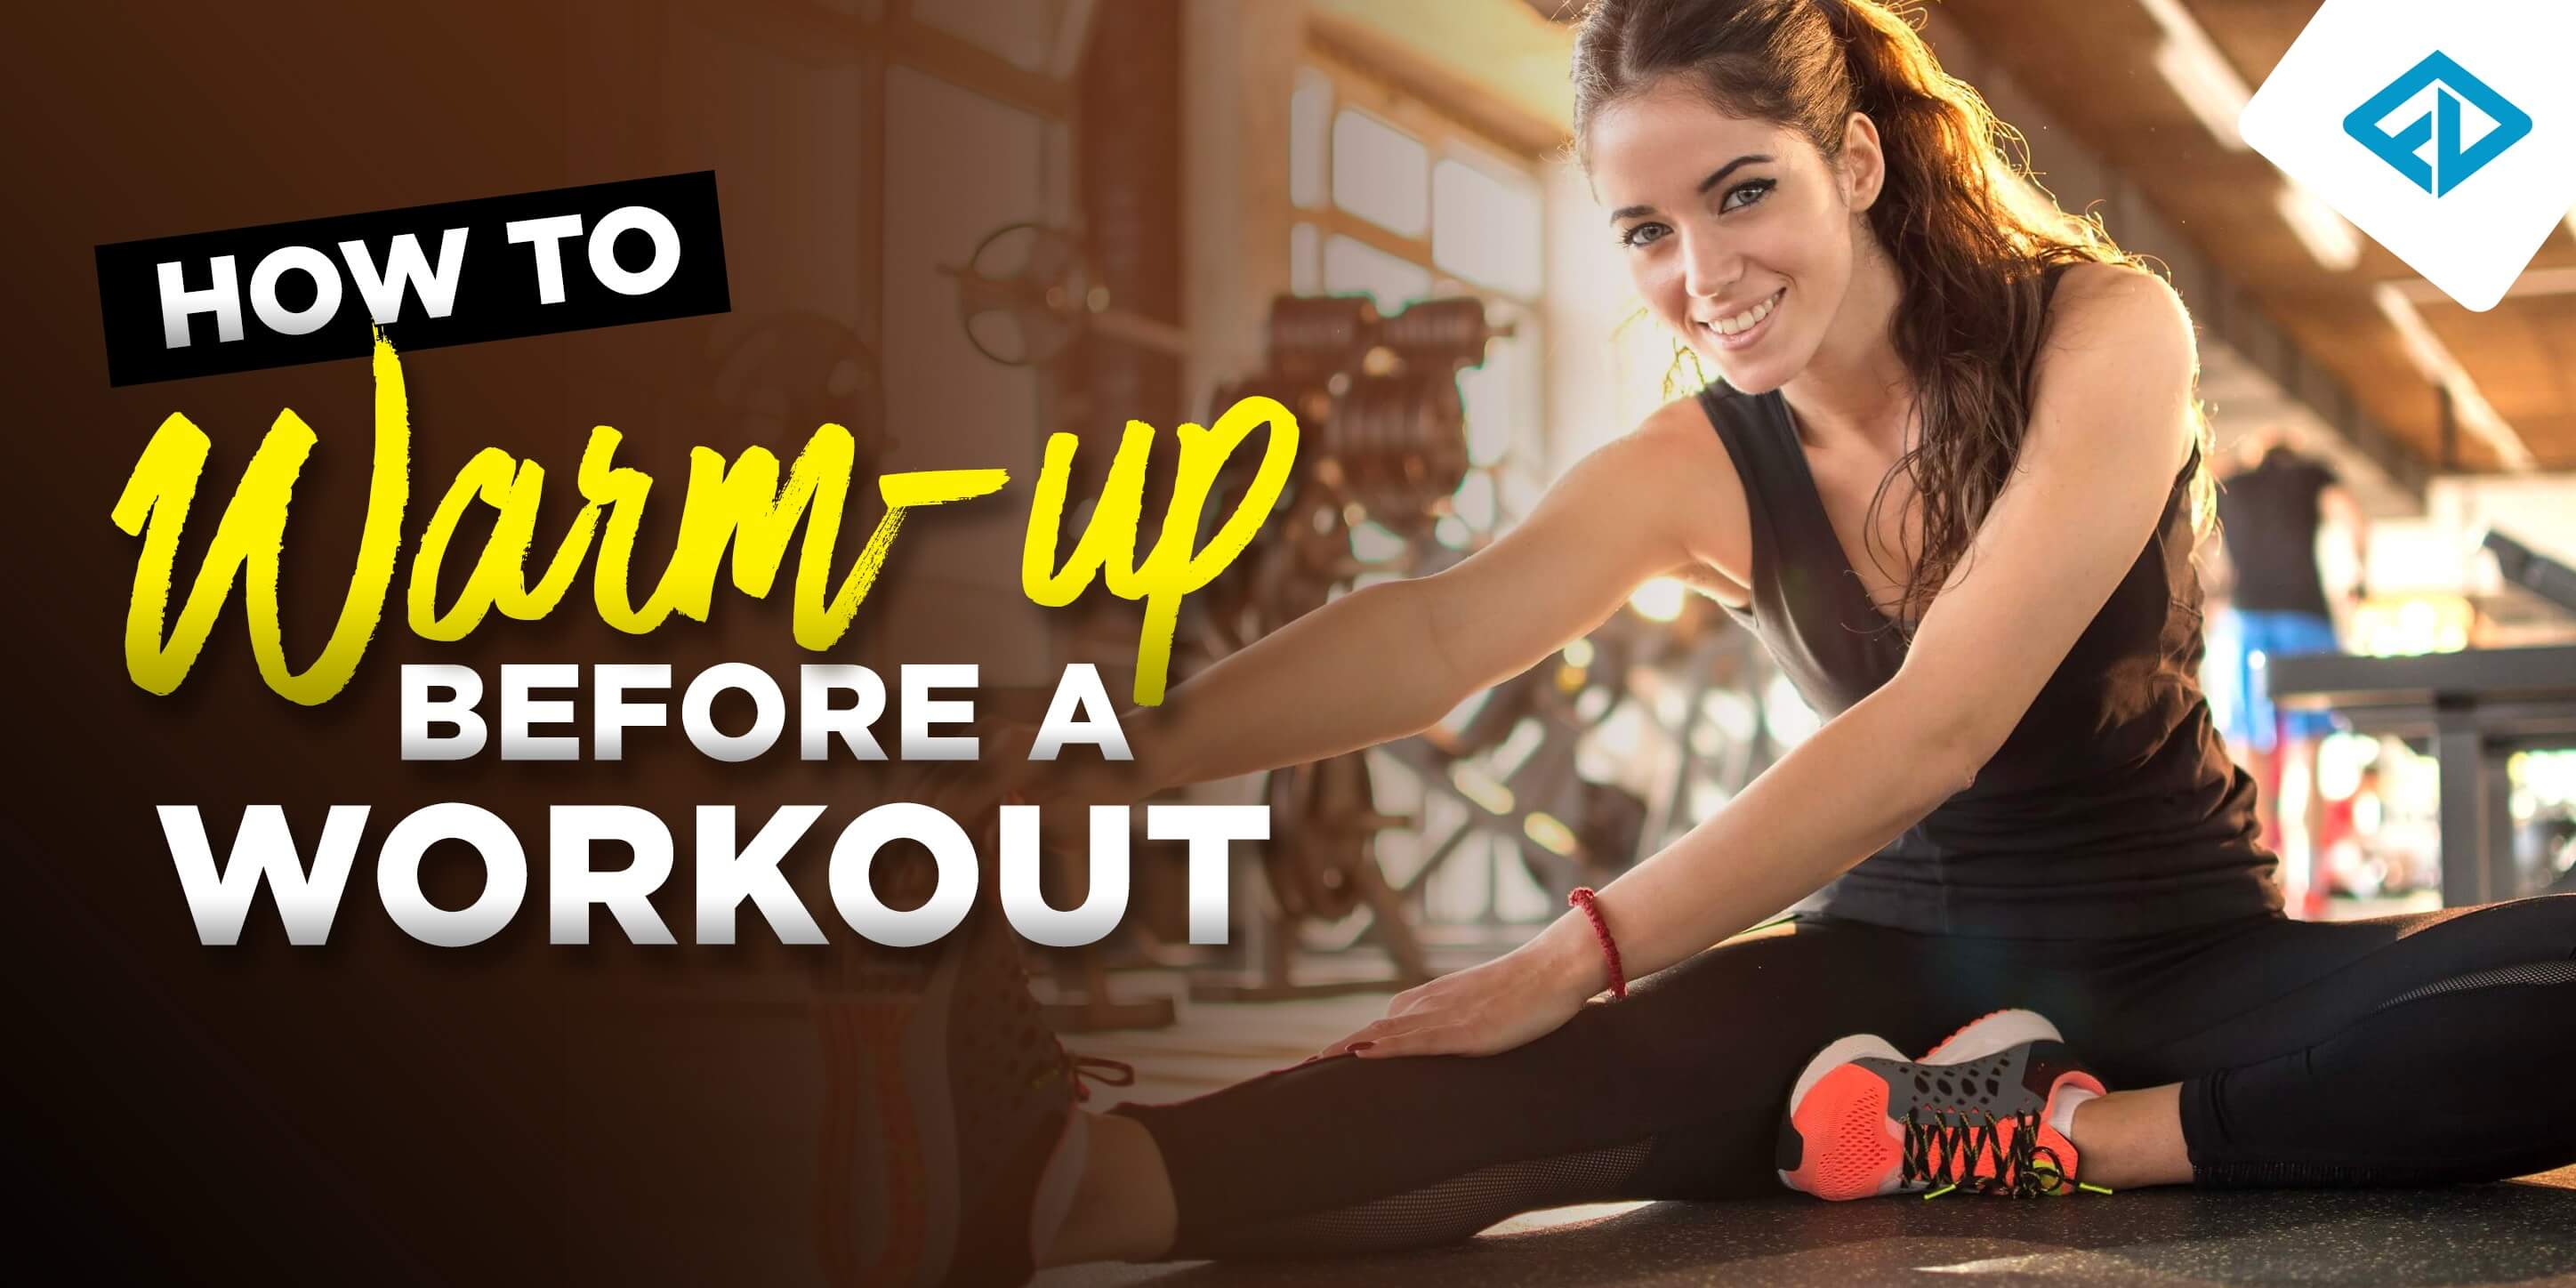 How To Warm Up Properly Before A Workout